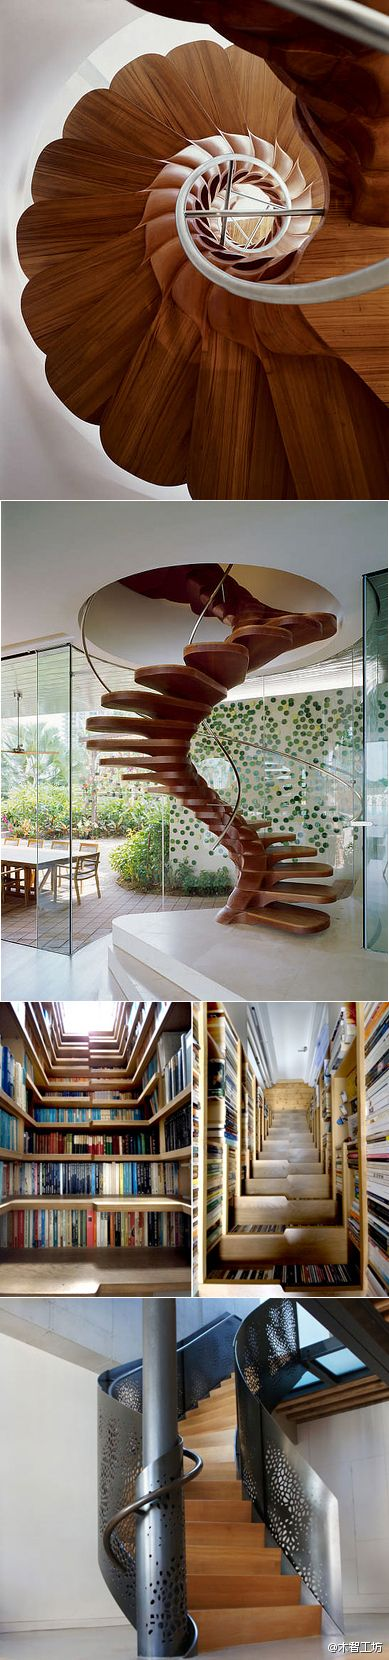 A spiral staircase designed based on the golden ratio?  That's just about as good as it gets.